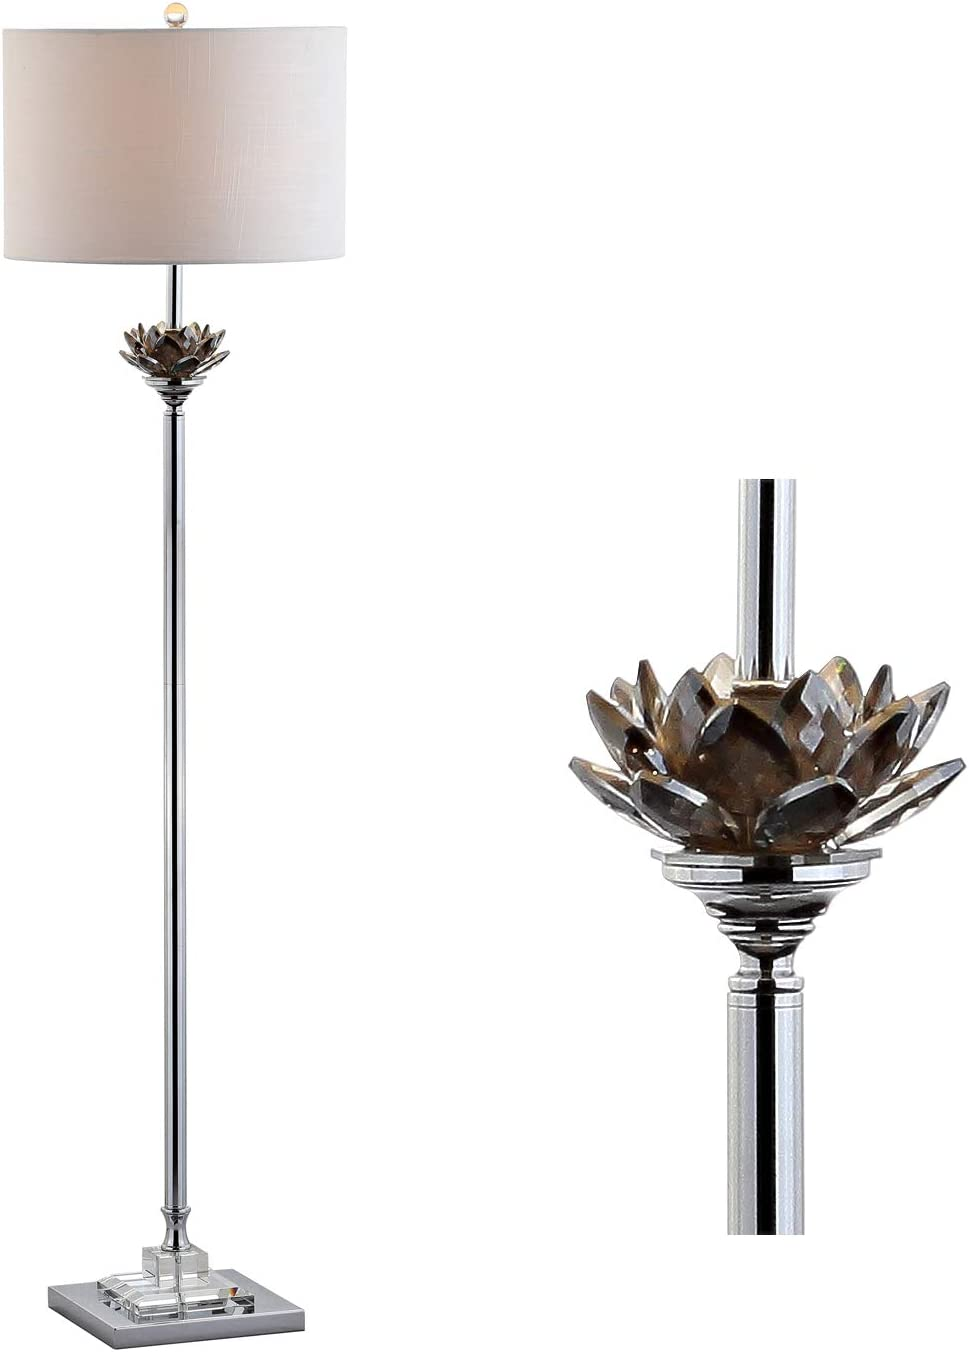 JONATHAN Y JYL2032A Amelia Lotus 59″ Crystal/Metal LED Floor Lamp Contemporary,Transitional,Traditional